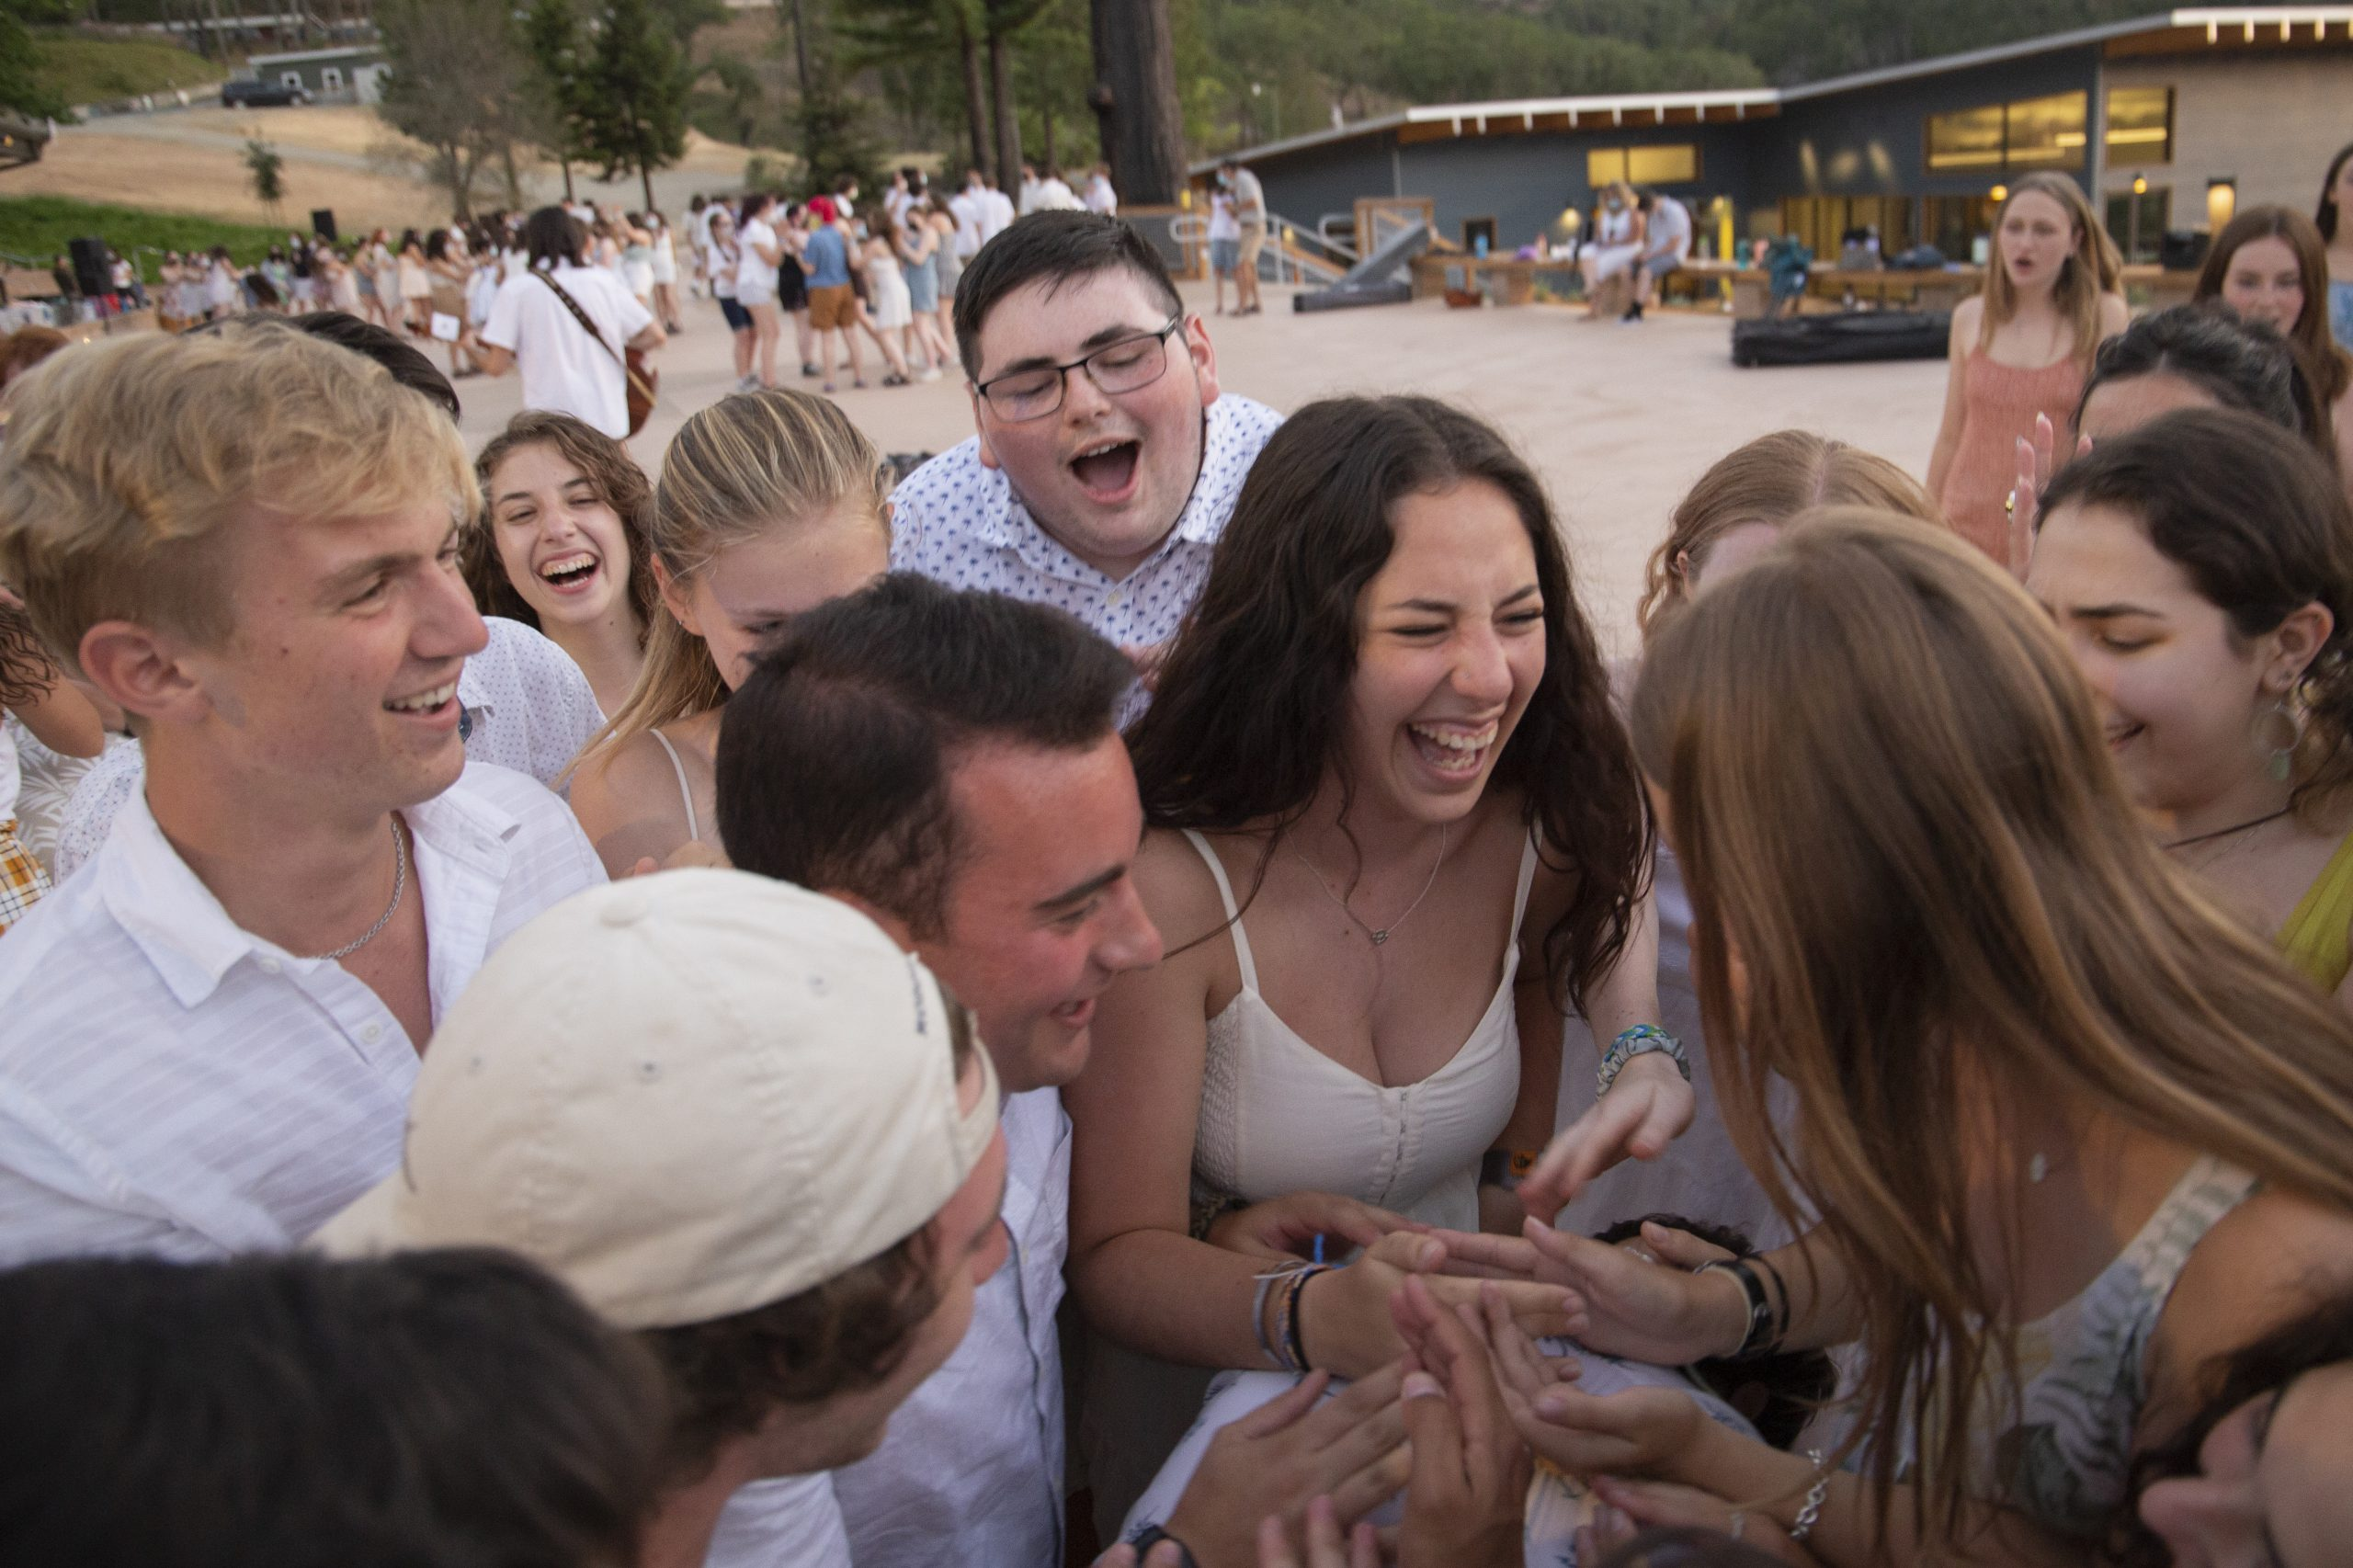 URJ Camp Newman staff dance together on Shabbat before the return of campers.